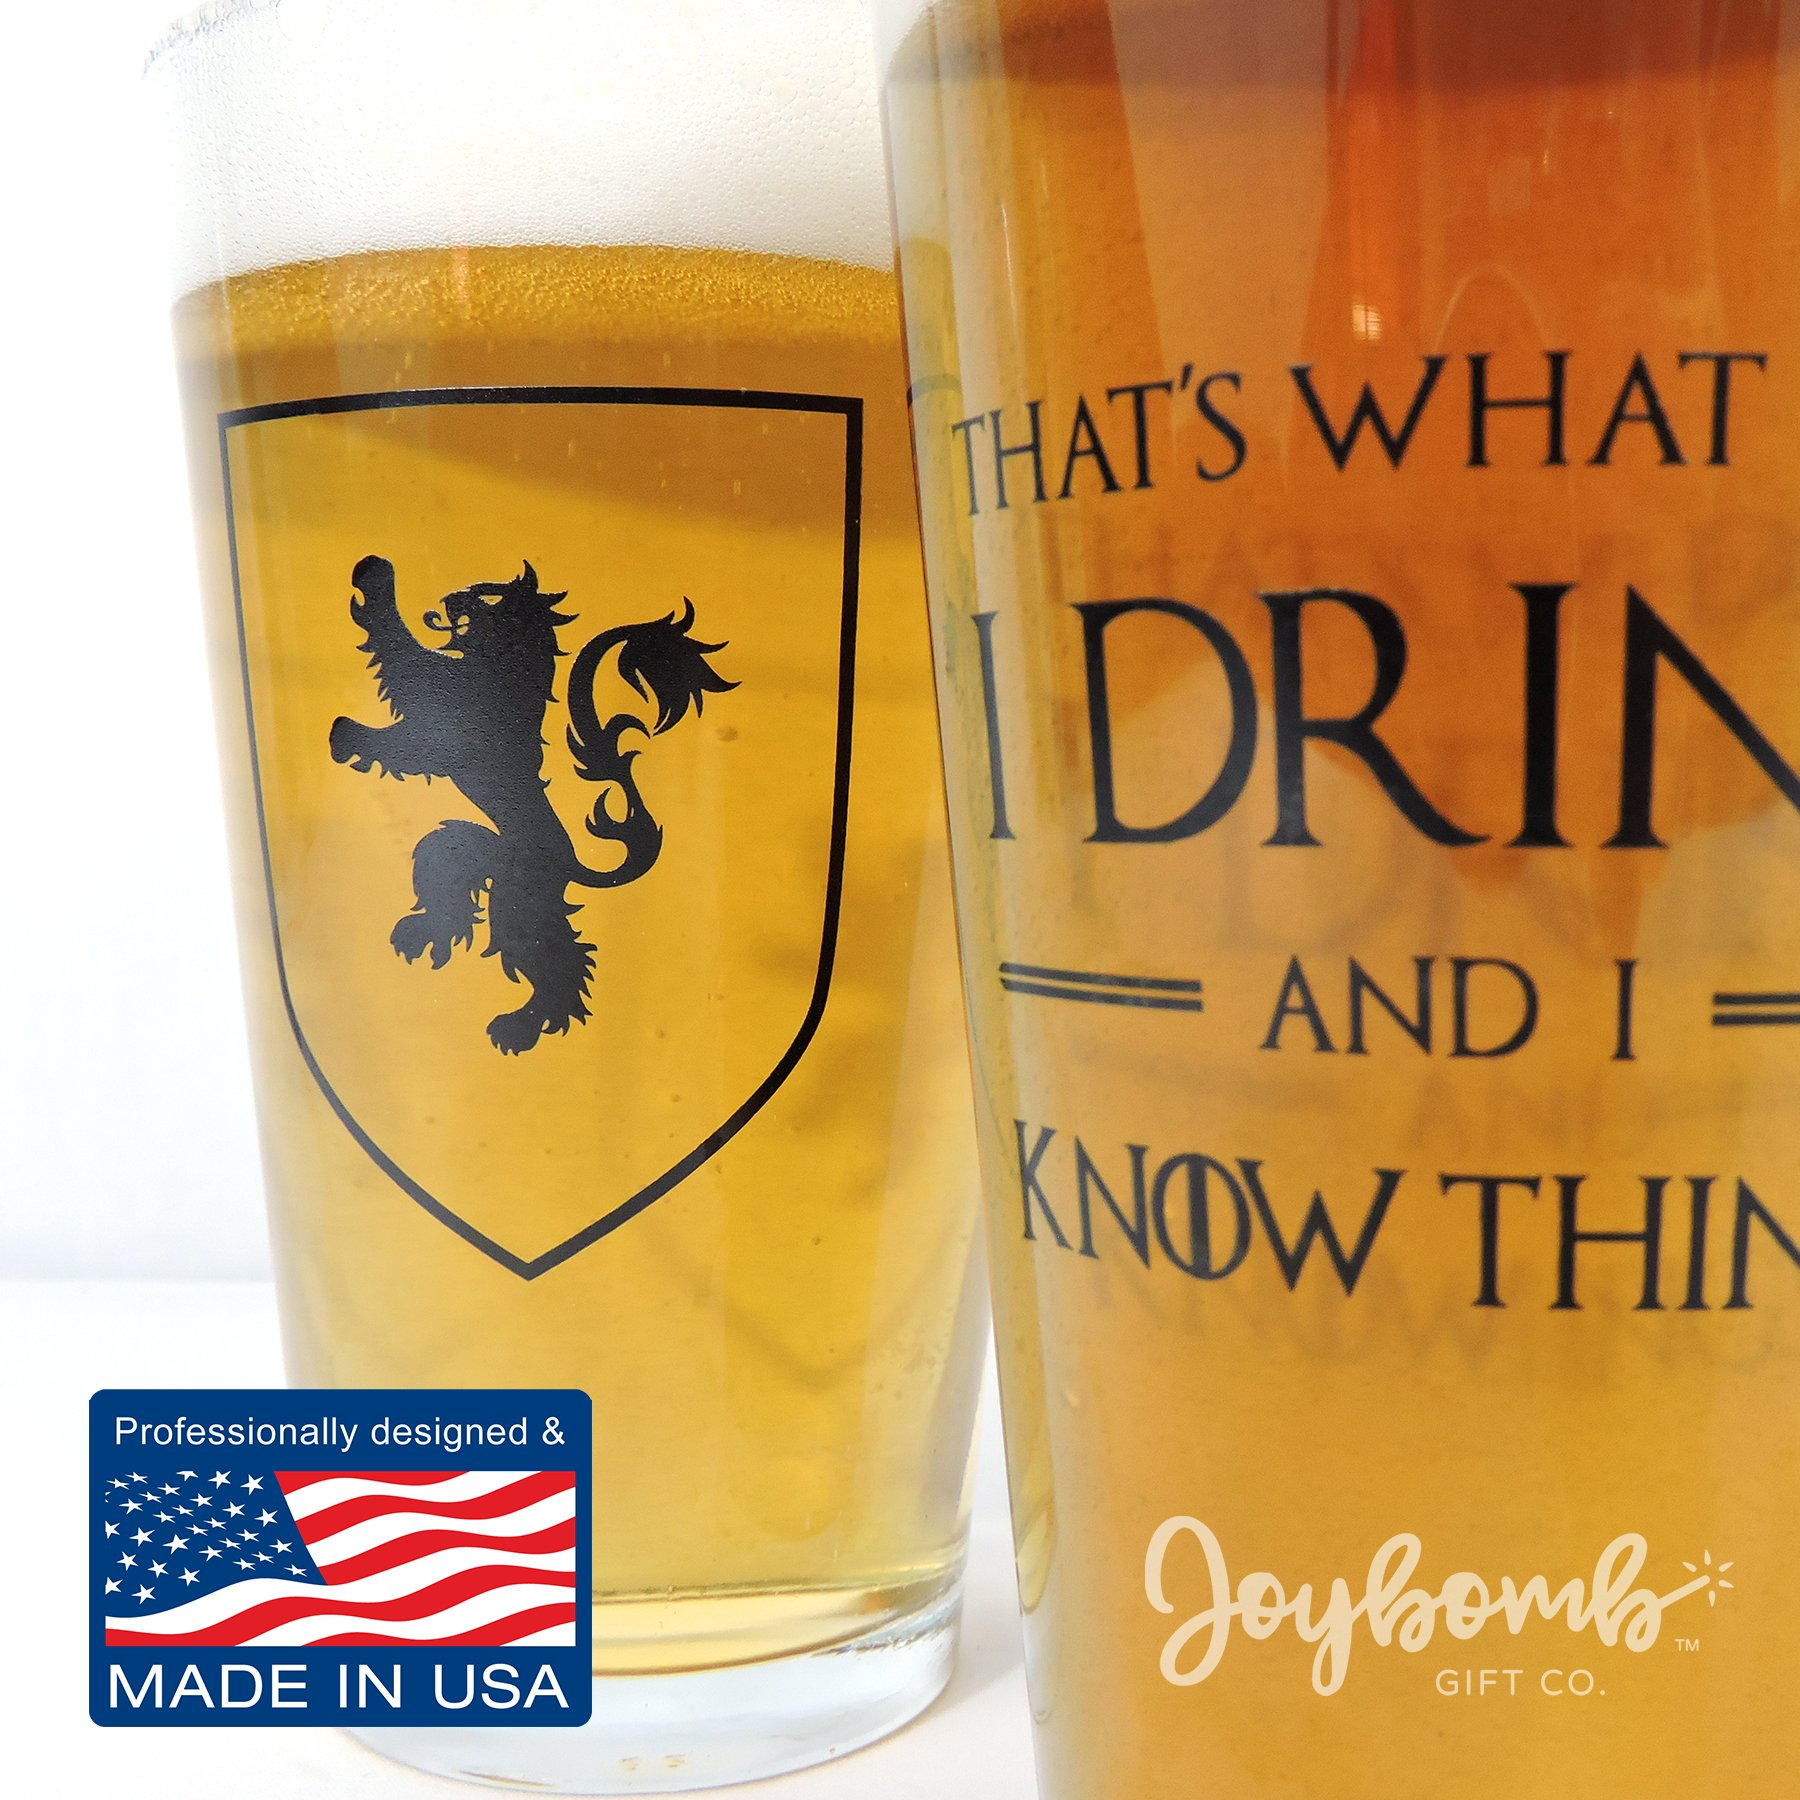 I Drink and I Know Things: Beer Glass - Perfect gift for Game of Thrones fans - Tyrion Lannister Mug Cup - 16oz - Made in USA by Joybomb Gift Co. (Image #5)